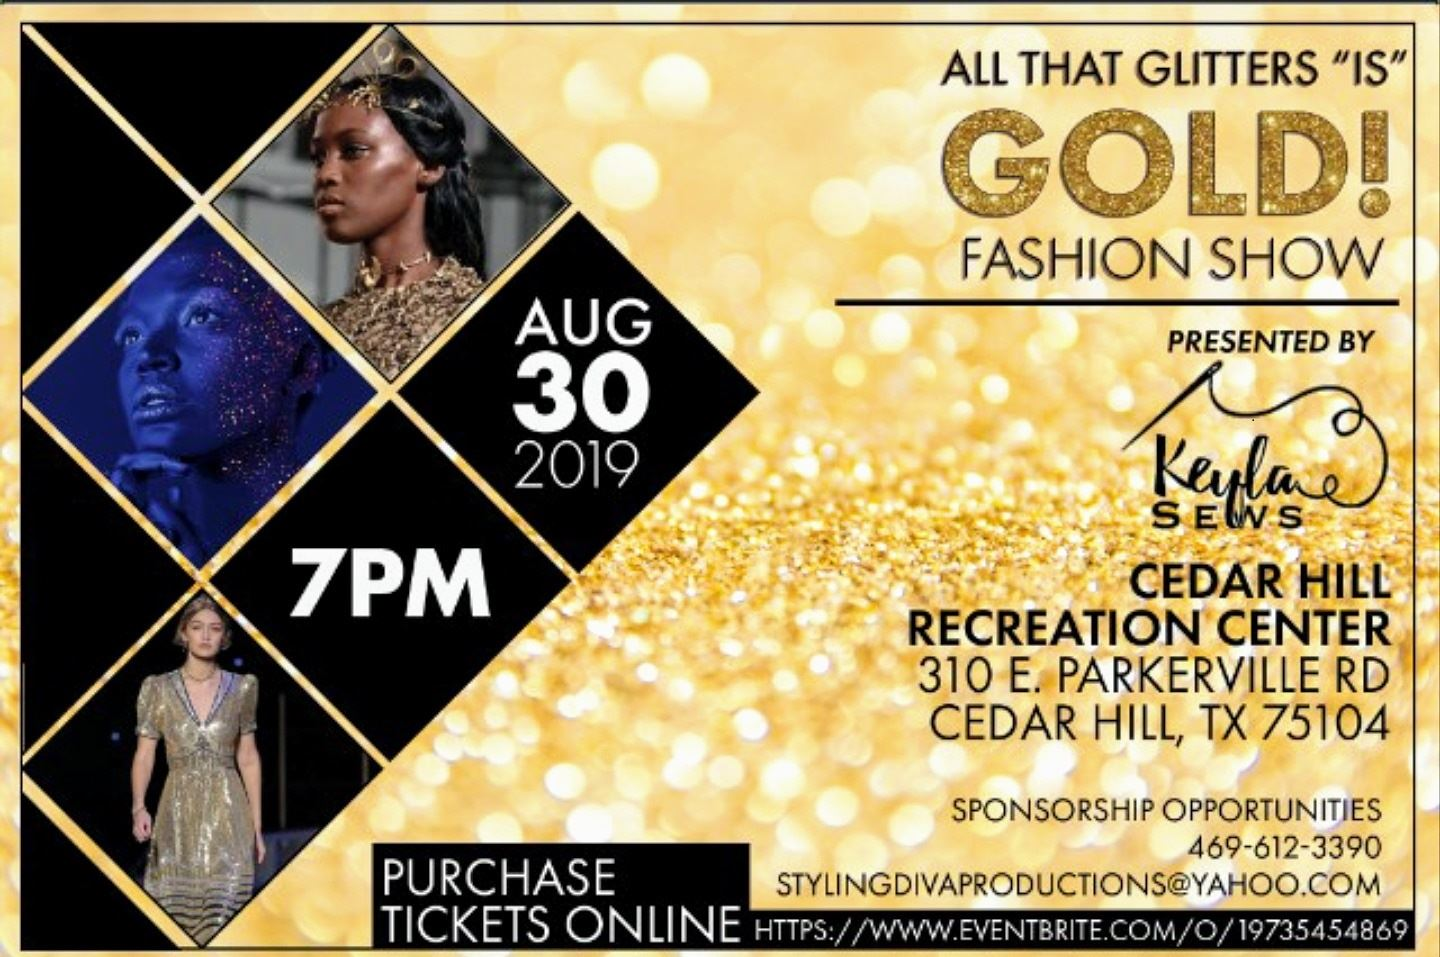 All That Glitters Is Gold Fashion Show